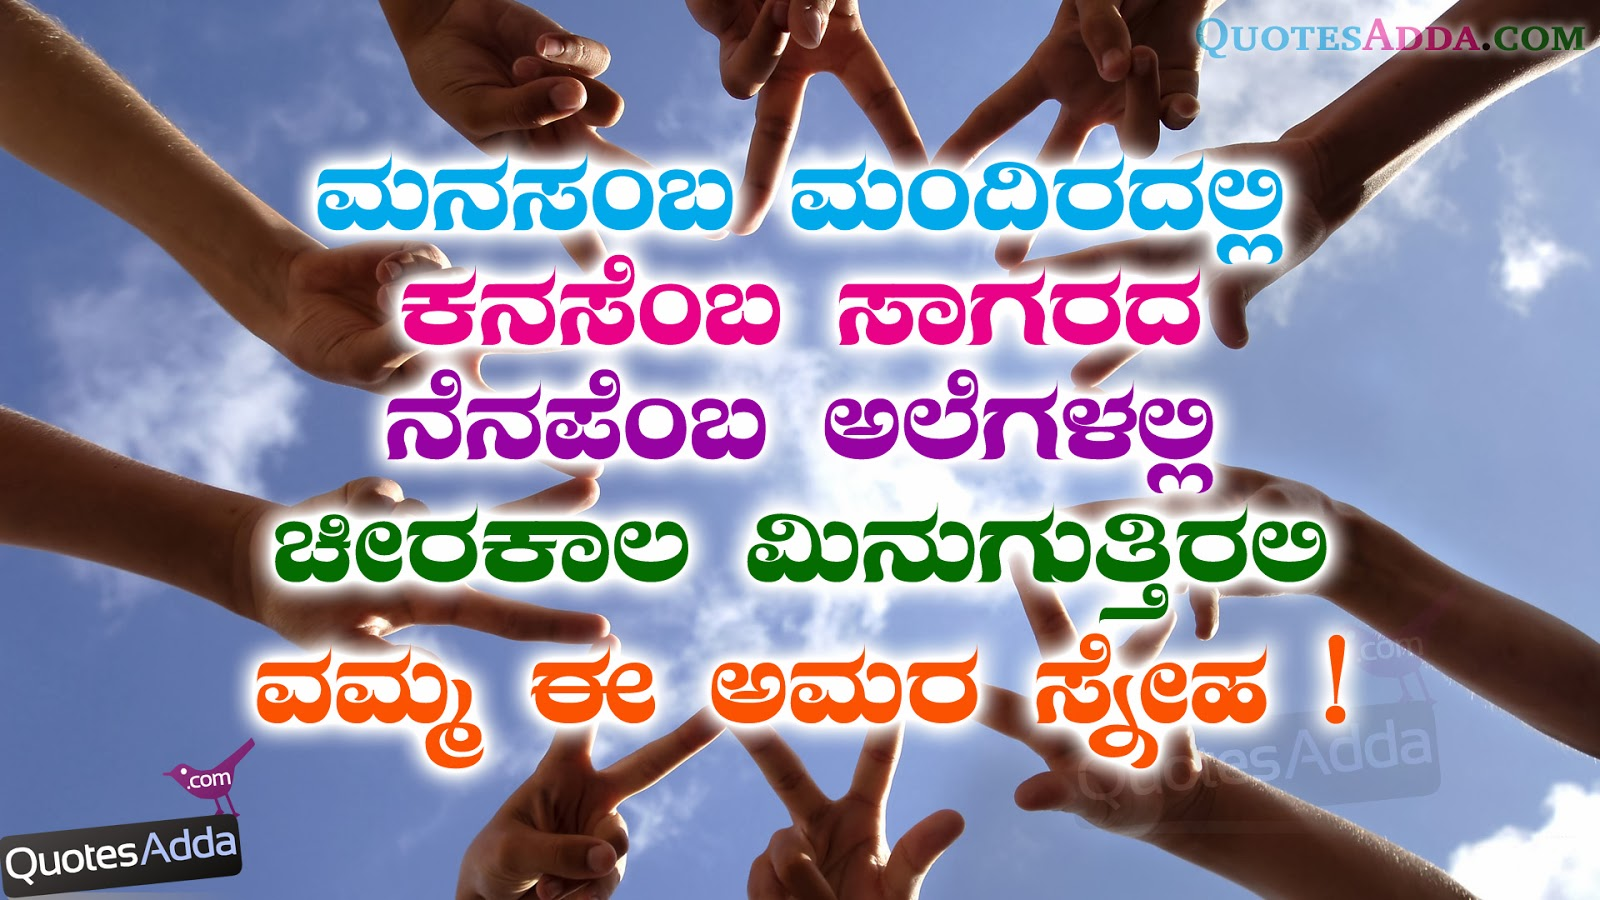 Sad Quotes About Love In Kannada : Quotes on Love in Kannada Kannada Friendship Quotes